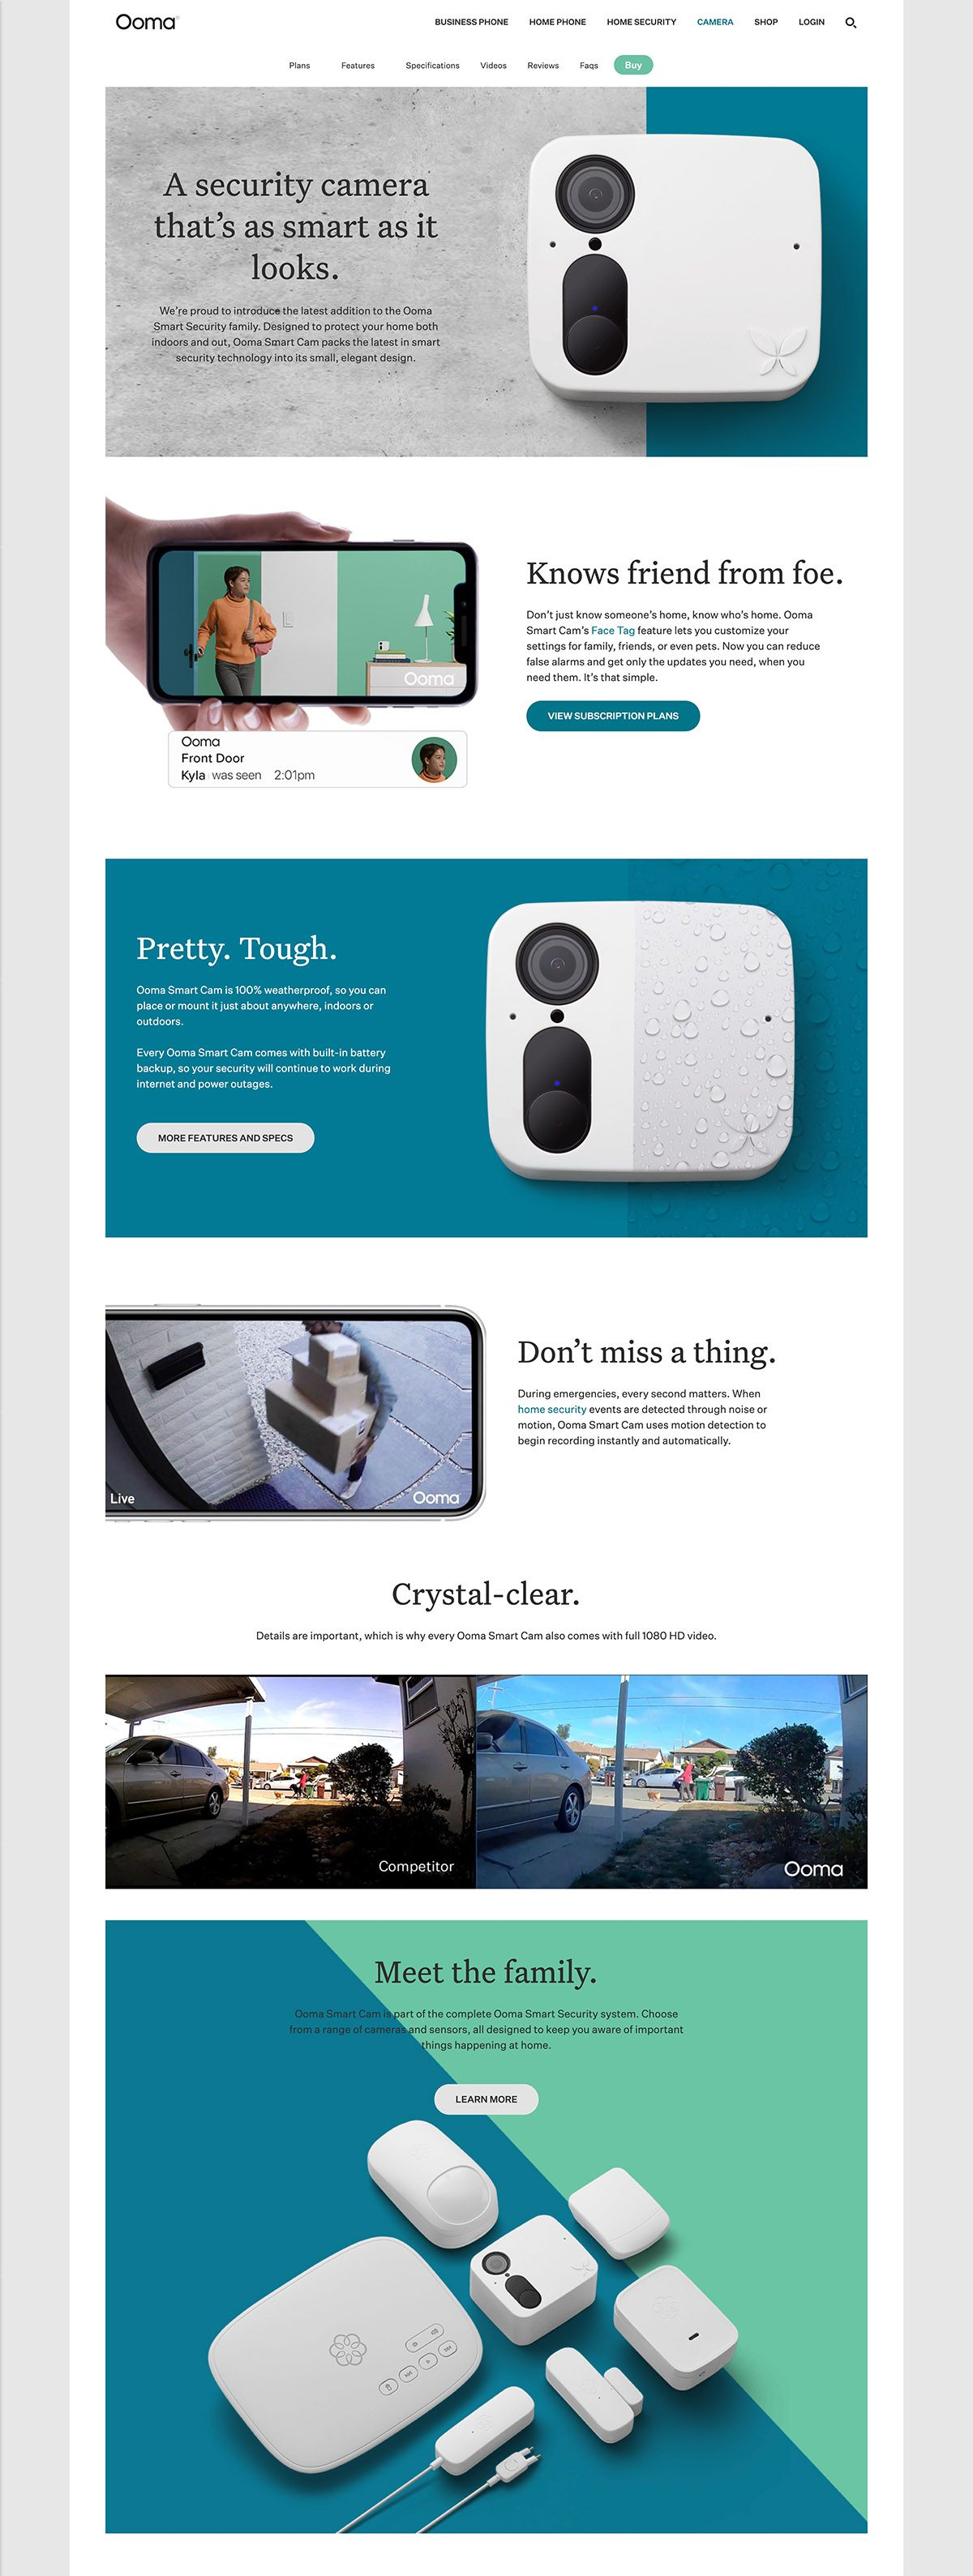 eCommerce website: Ooma, Inc.